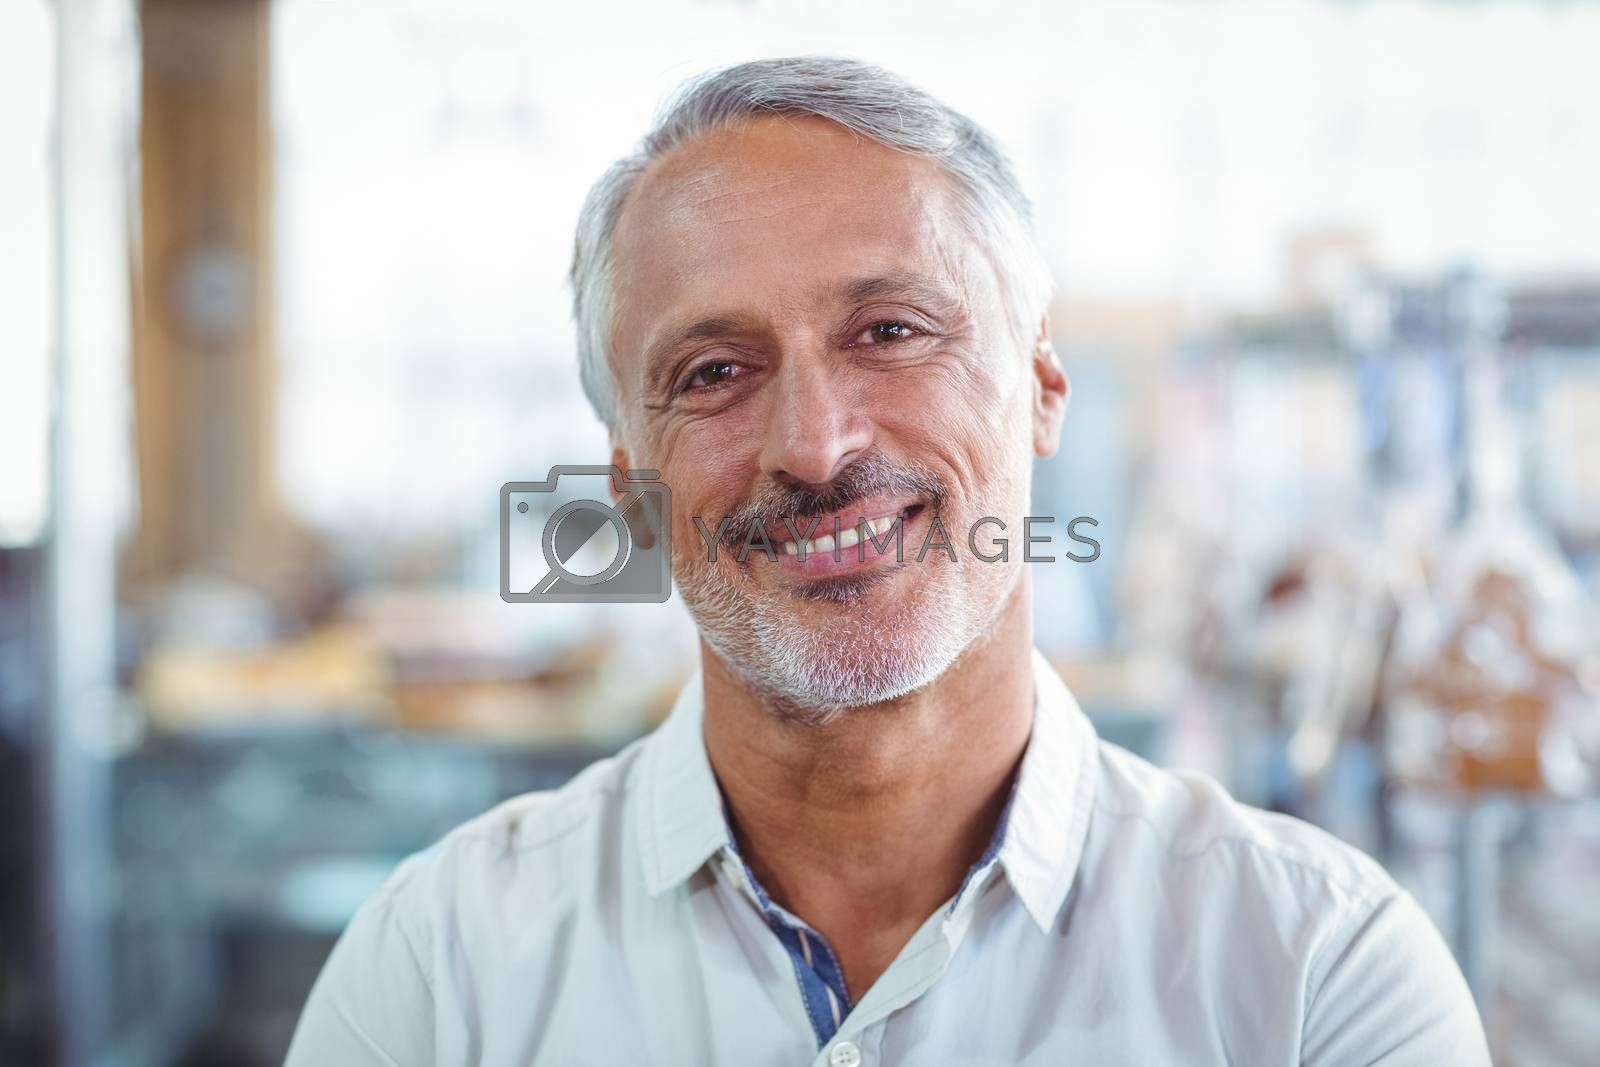 Royalty free image of smiling customer looking at the camera by Wavebreakmedia